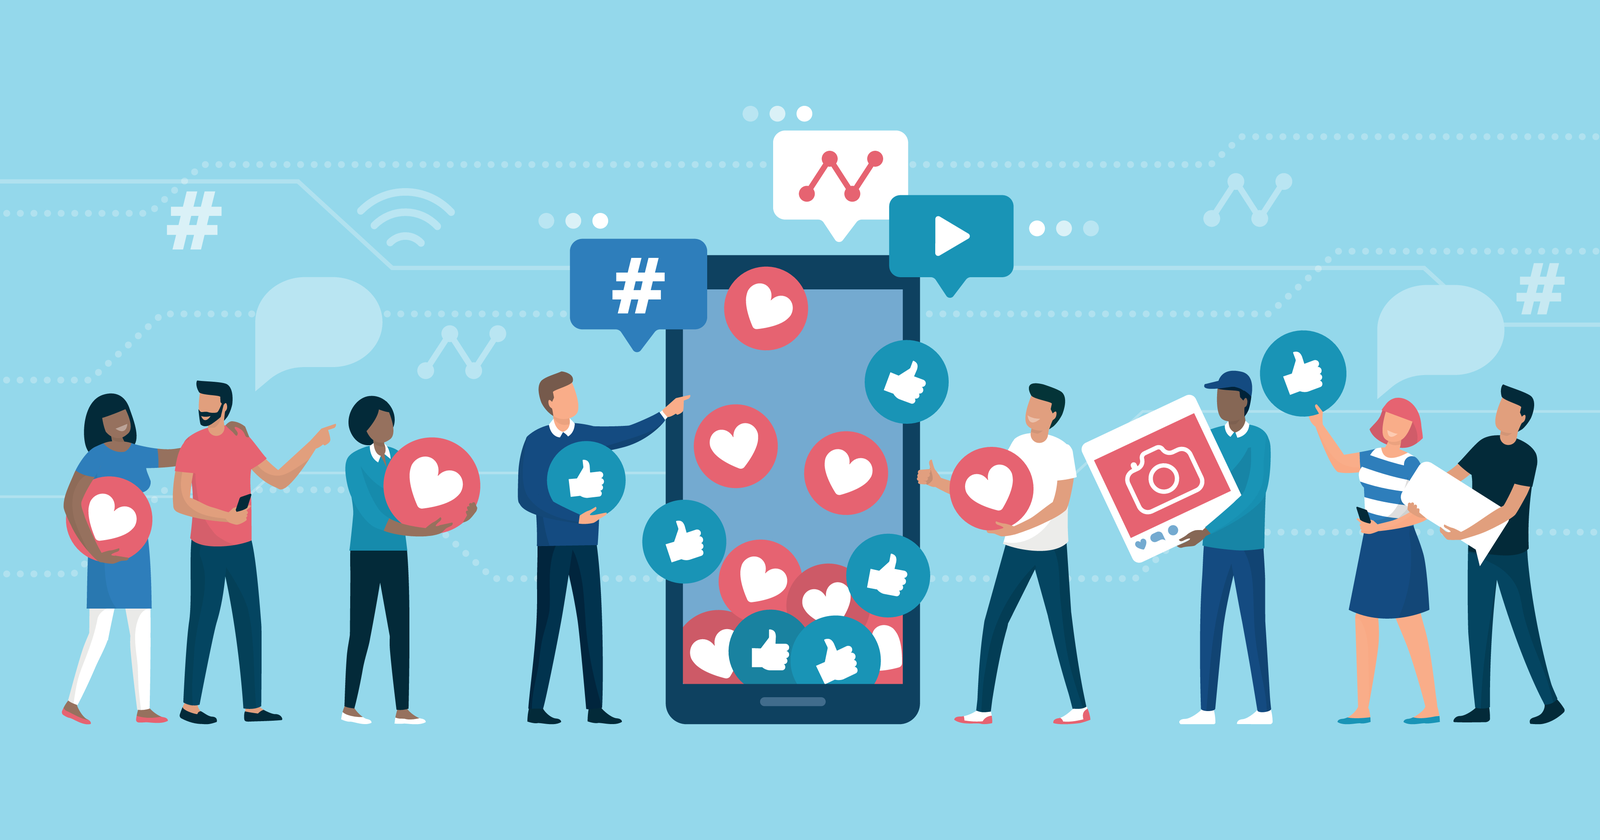 How To Build A Social Media Marketing Strategy